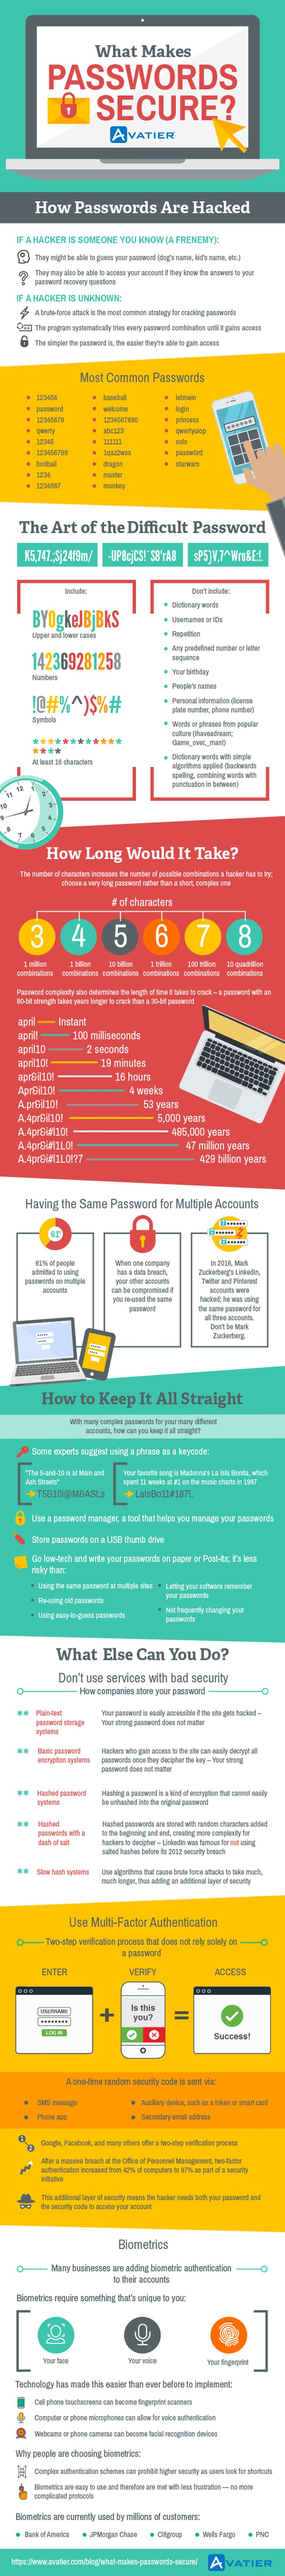 What Makes Passwords Secure? #Infographic #Passwords #Security